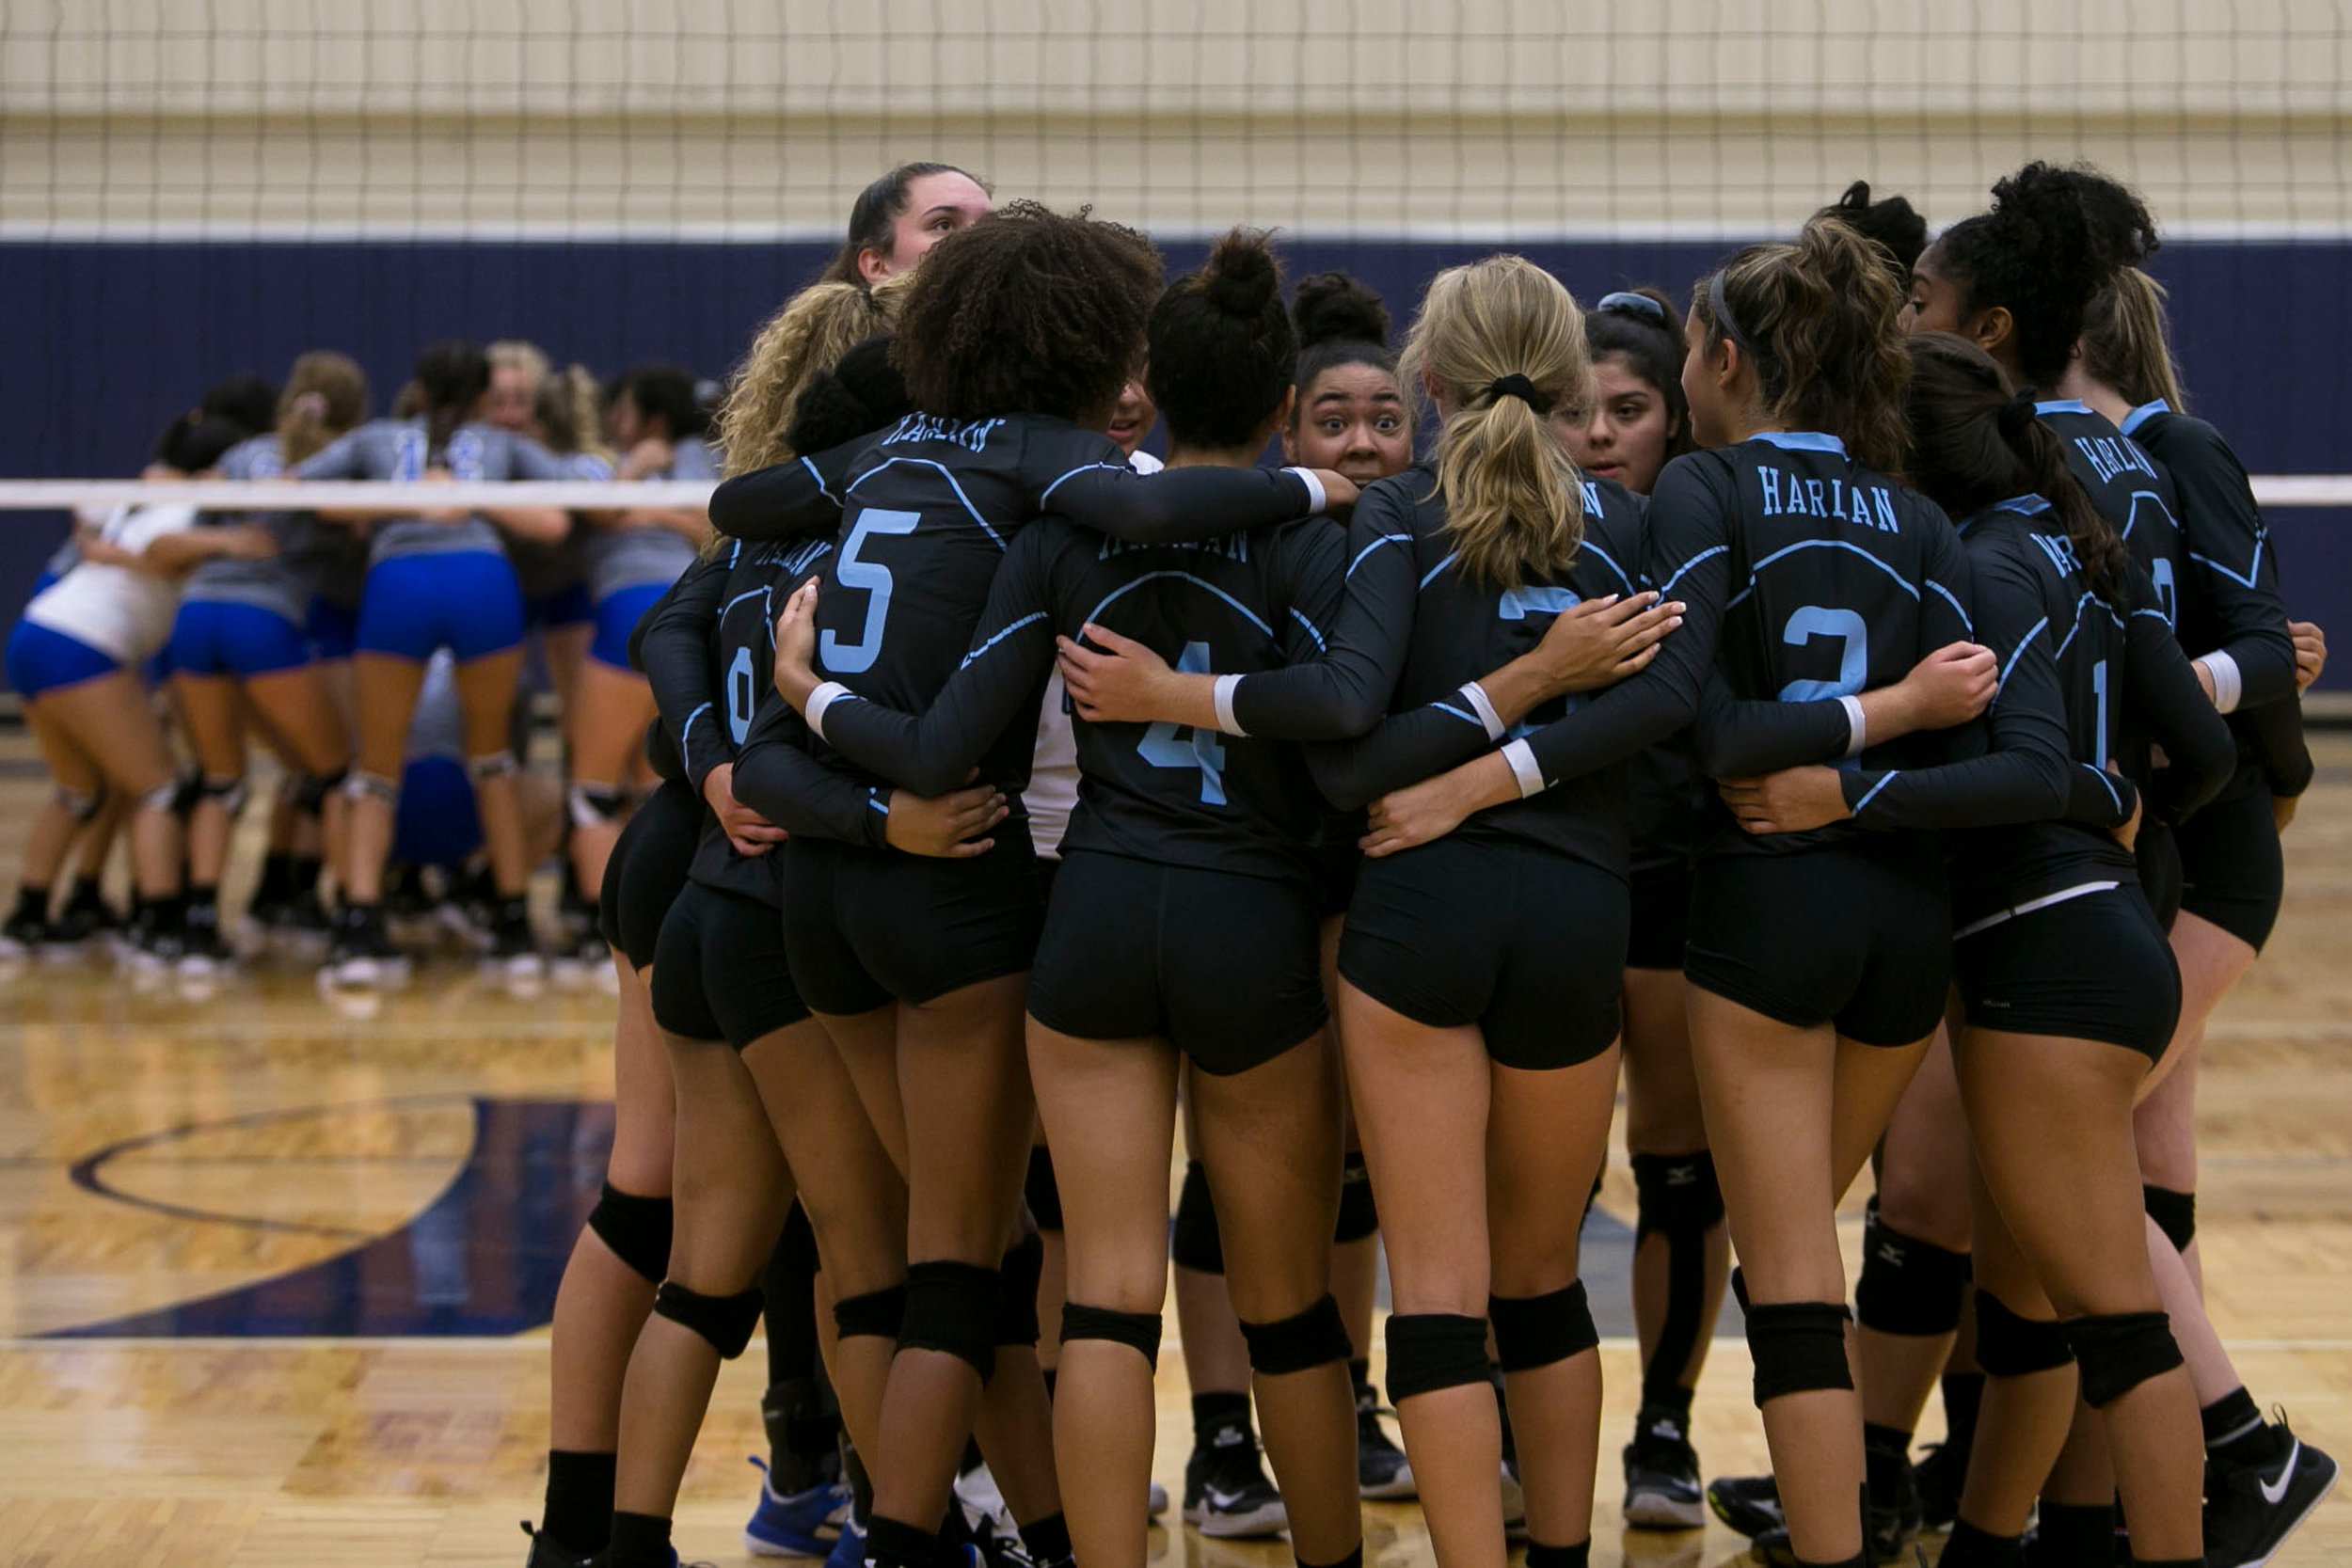 The first Harlan varsity volleyball team huddles up before their first game at Paul Taylor Fieldhouse.